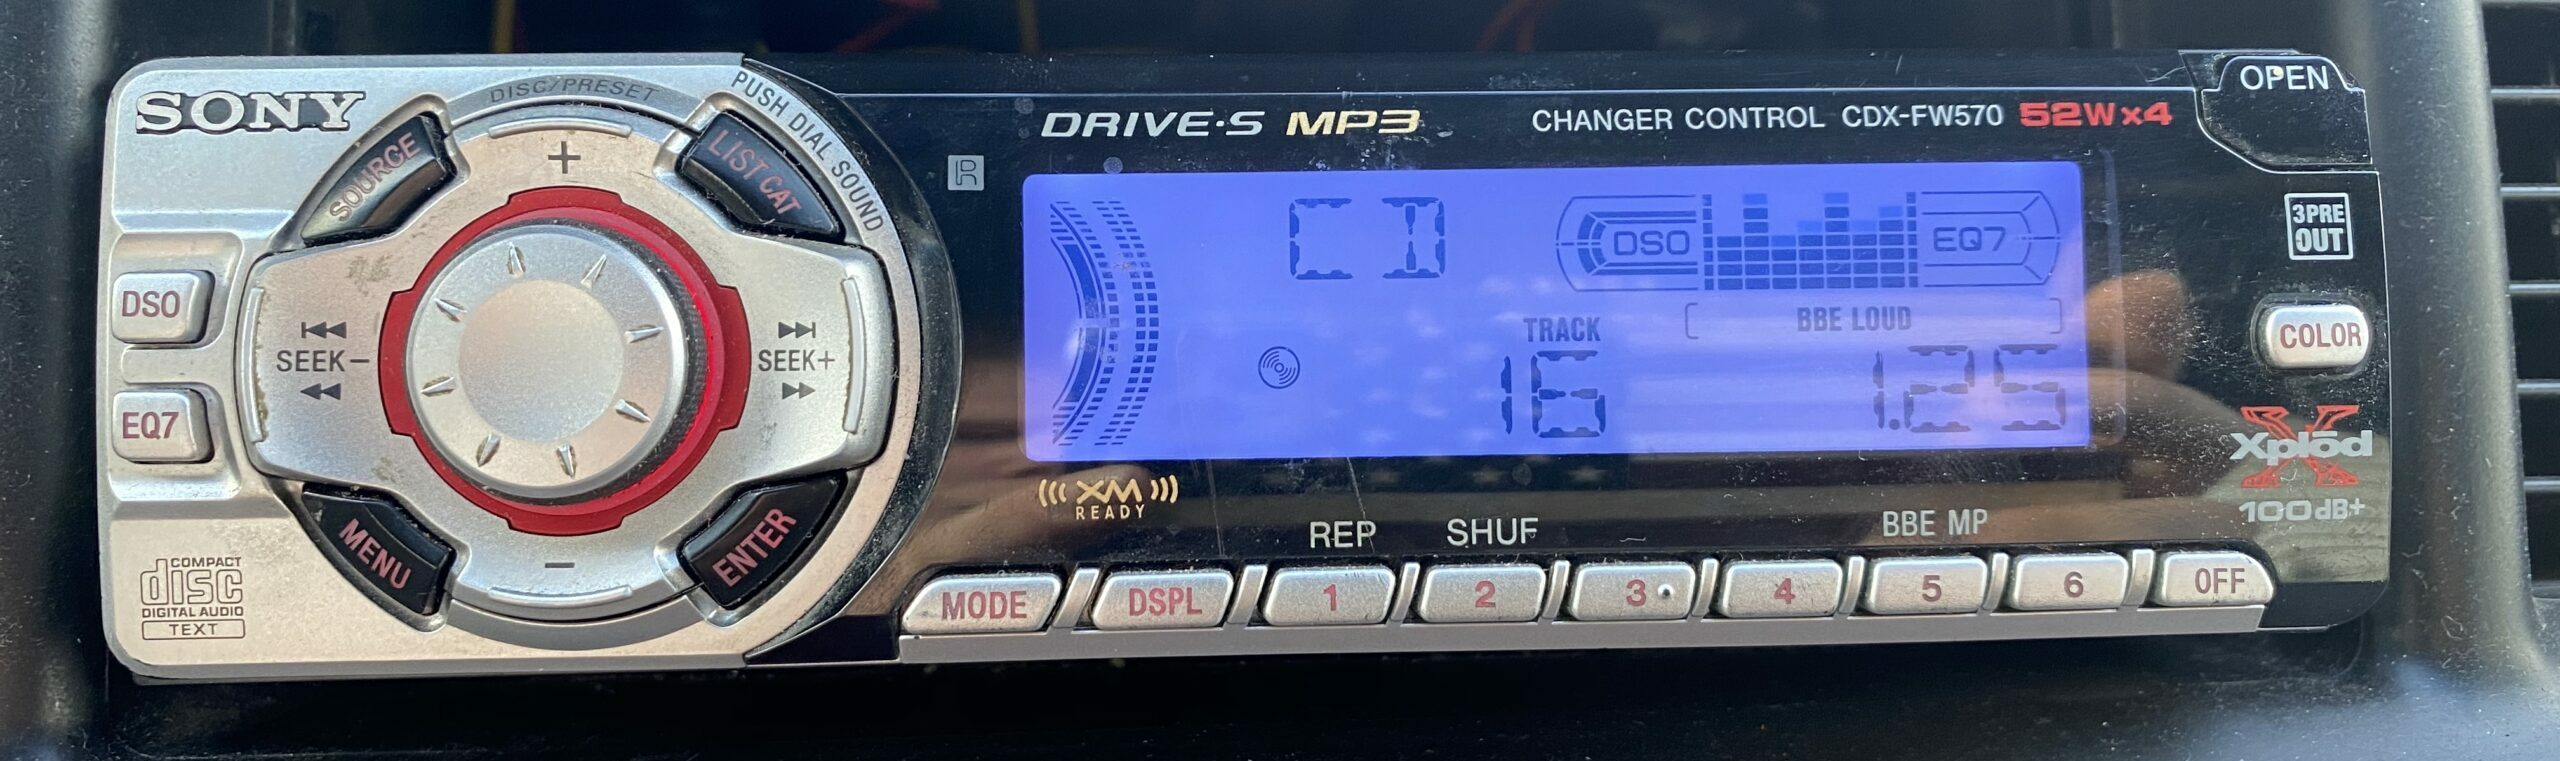 The Sony FW570 installed in a car.